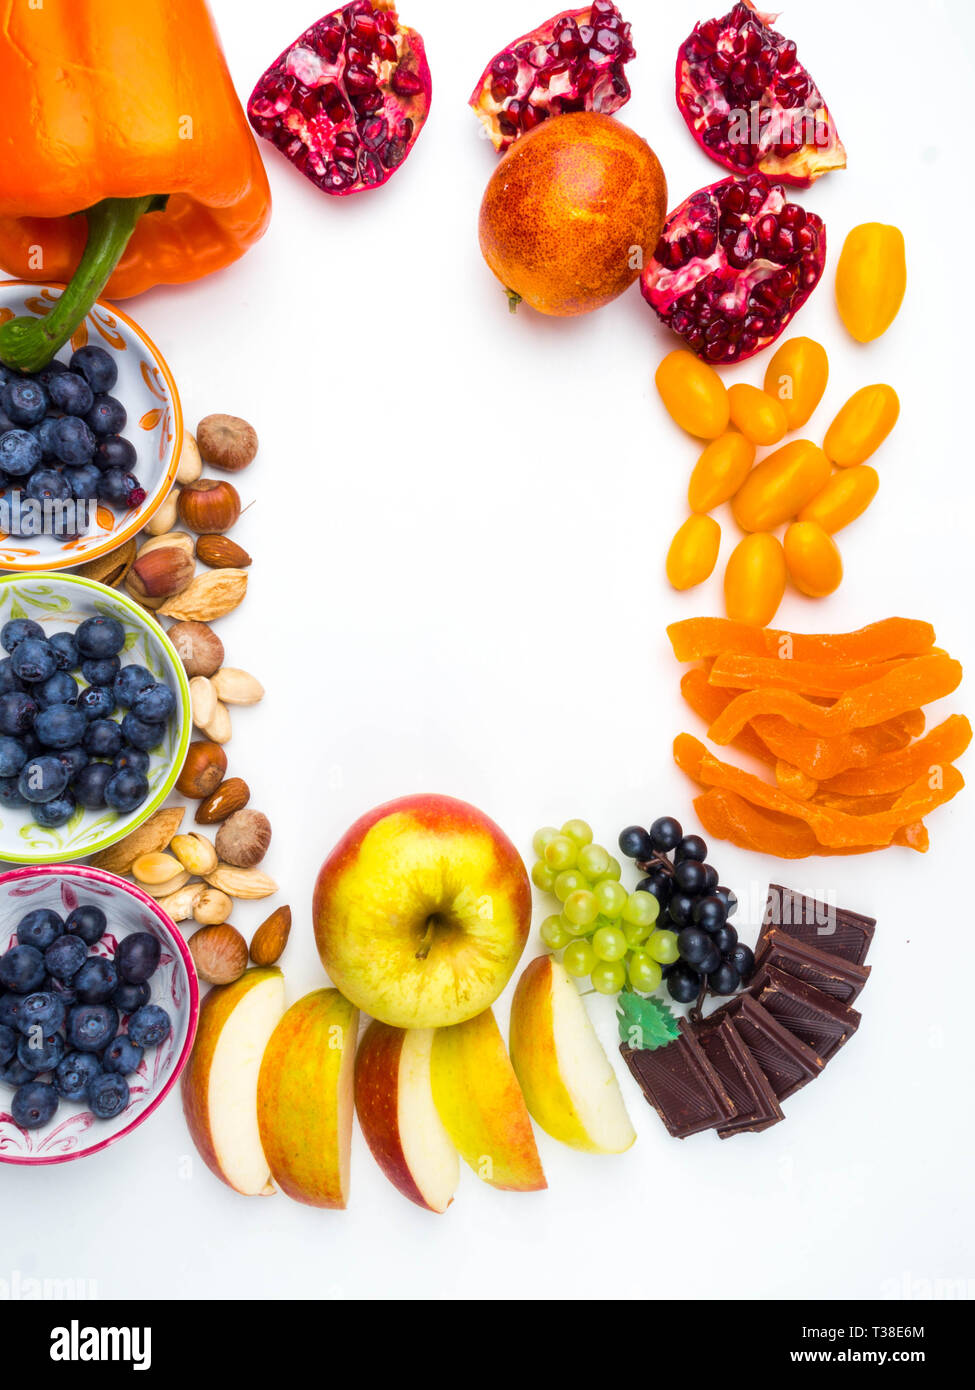 Mix Of Fresh Fruits And Berries Rich With Resveratrol Raw Food Ingredients Nutrition Background Good Foods For Heart Healthy Diet Stock Photo Alamy